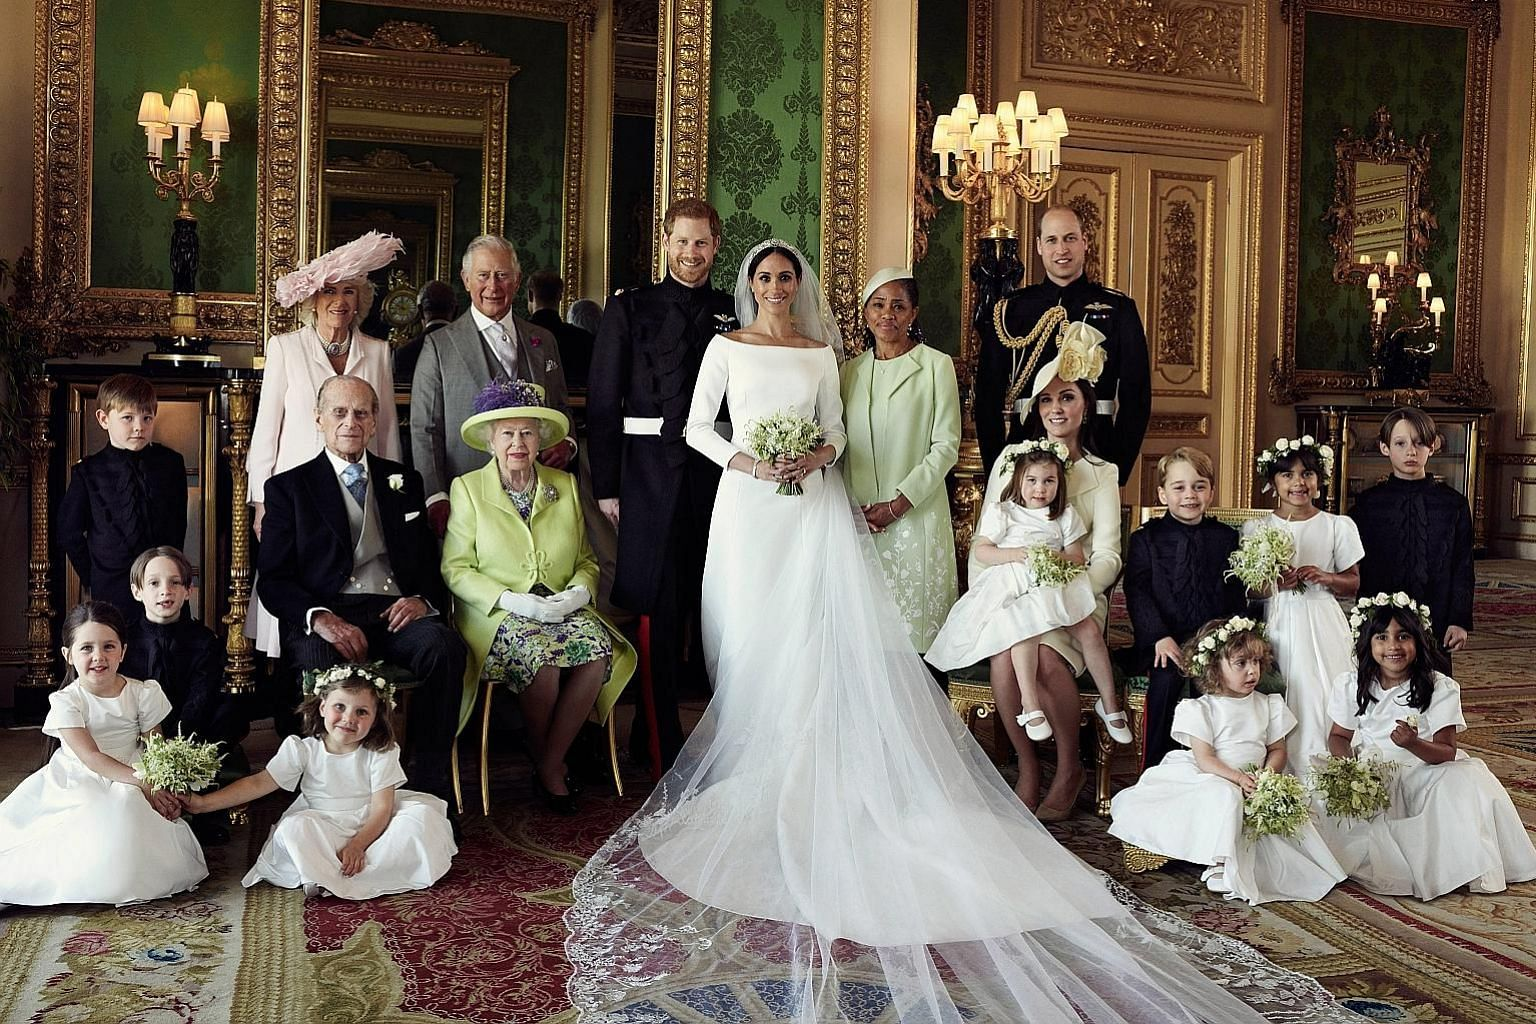 A photo released on Monday by Kensington Palace showing Britain's Prince Harry, the Duke of Sussex (centre), and his new wife Meghan, the Duchess of Sussex, in the Green Drawing Room of Windsor Castle, taken last Saturday. They were joined for the ph